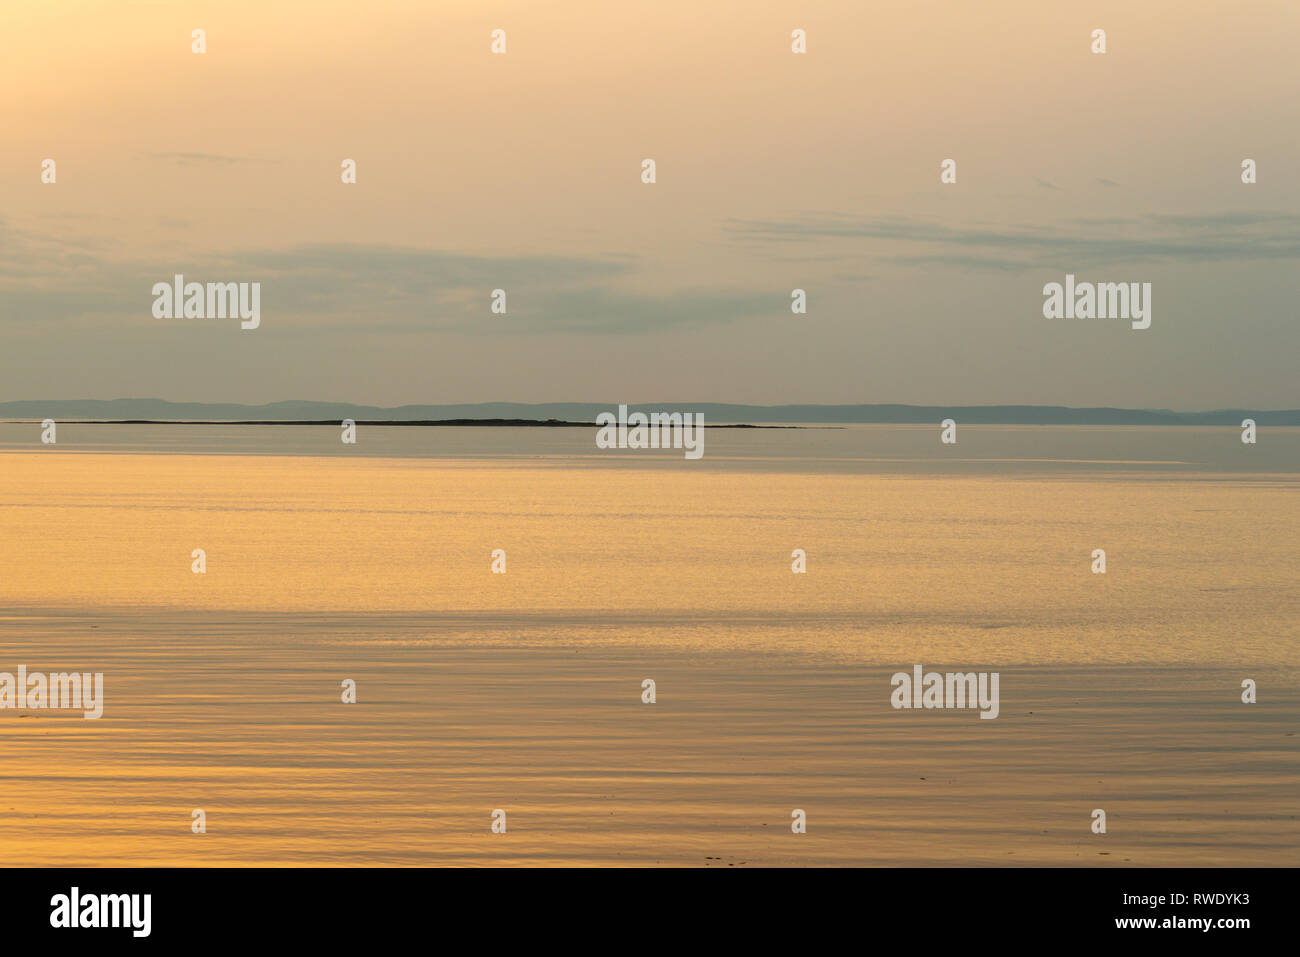 Minimalist landscape showing the evening last sunlight in summer time on the St.Lawrence River, Province of Quebec, Canada - Stock Image